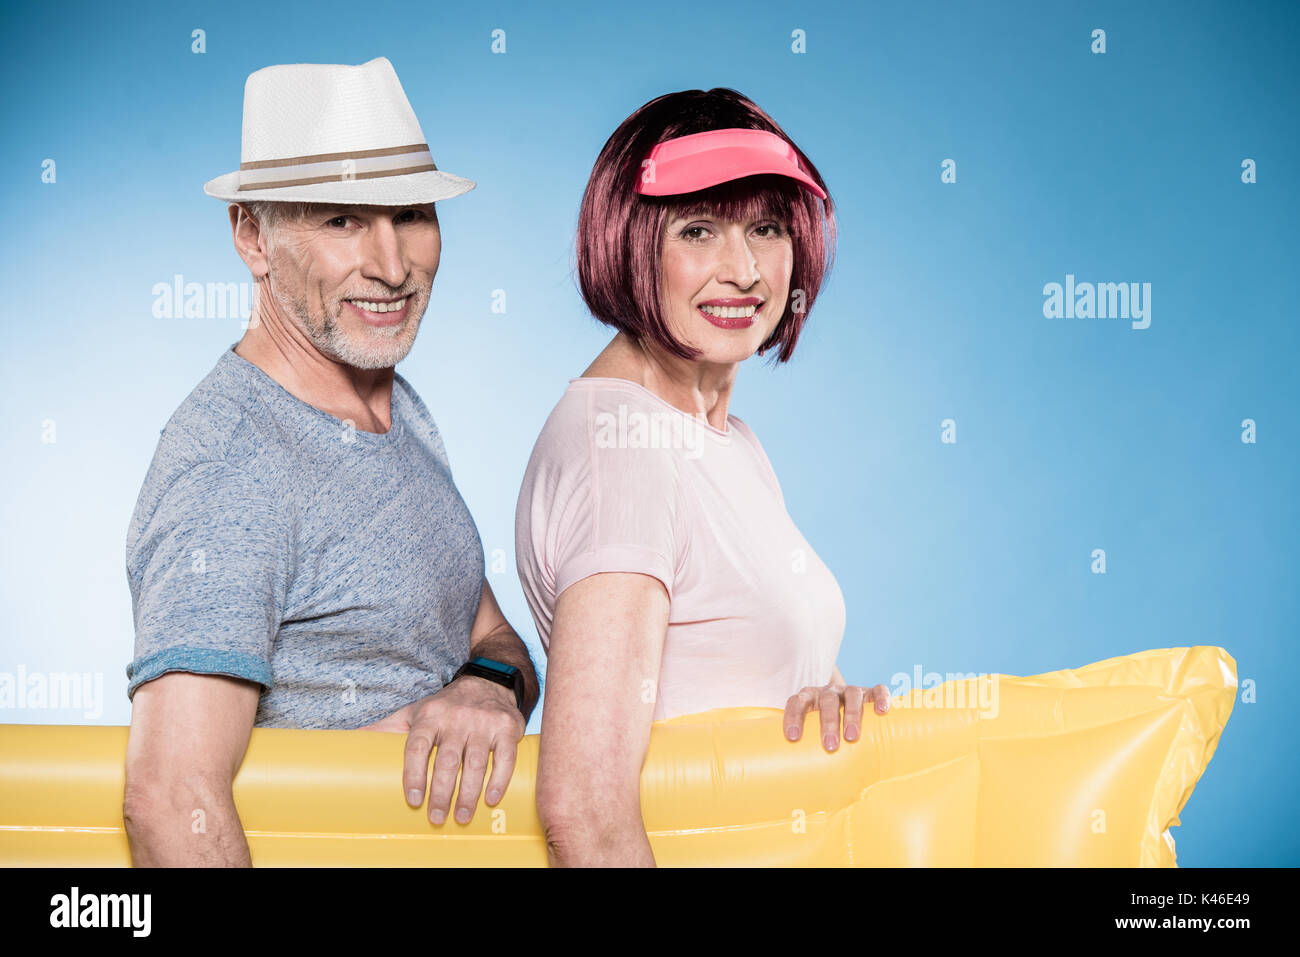 smiling elderly couple looking at camera and holding swimming mattress - Stock Image